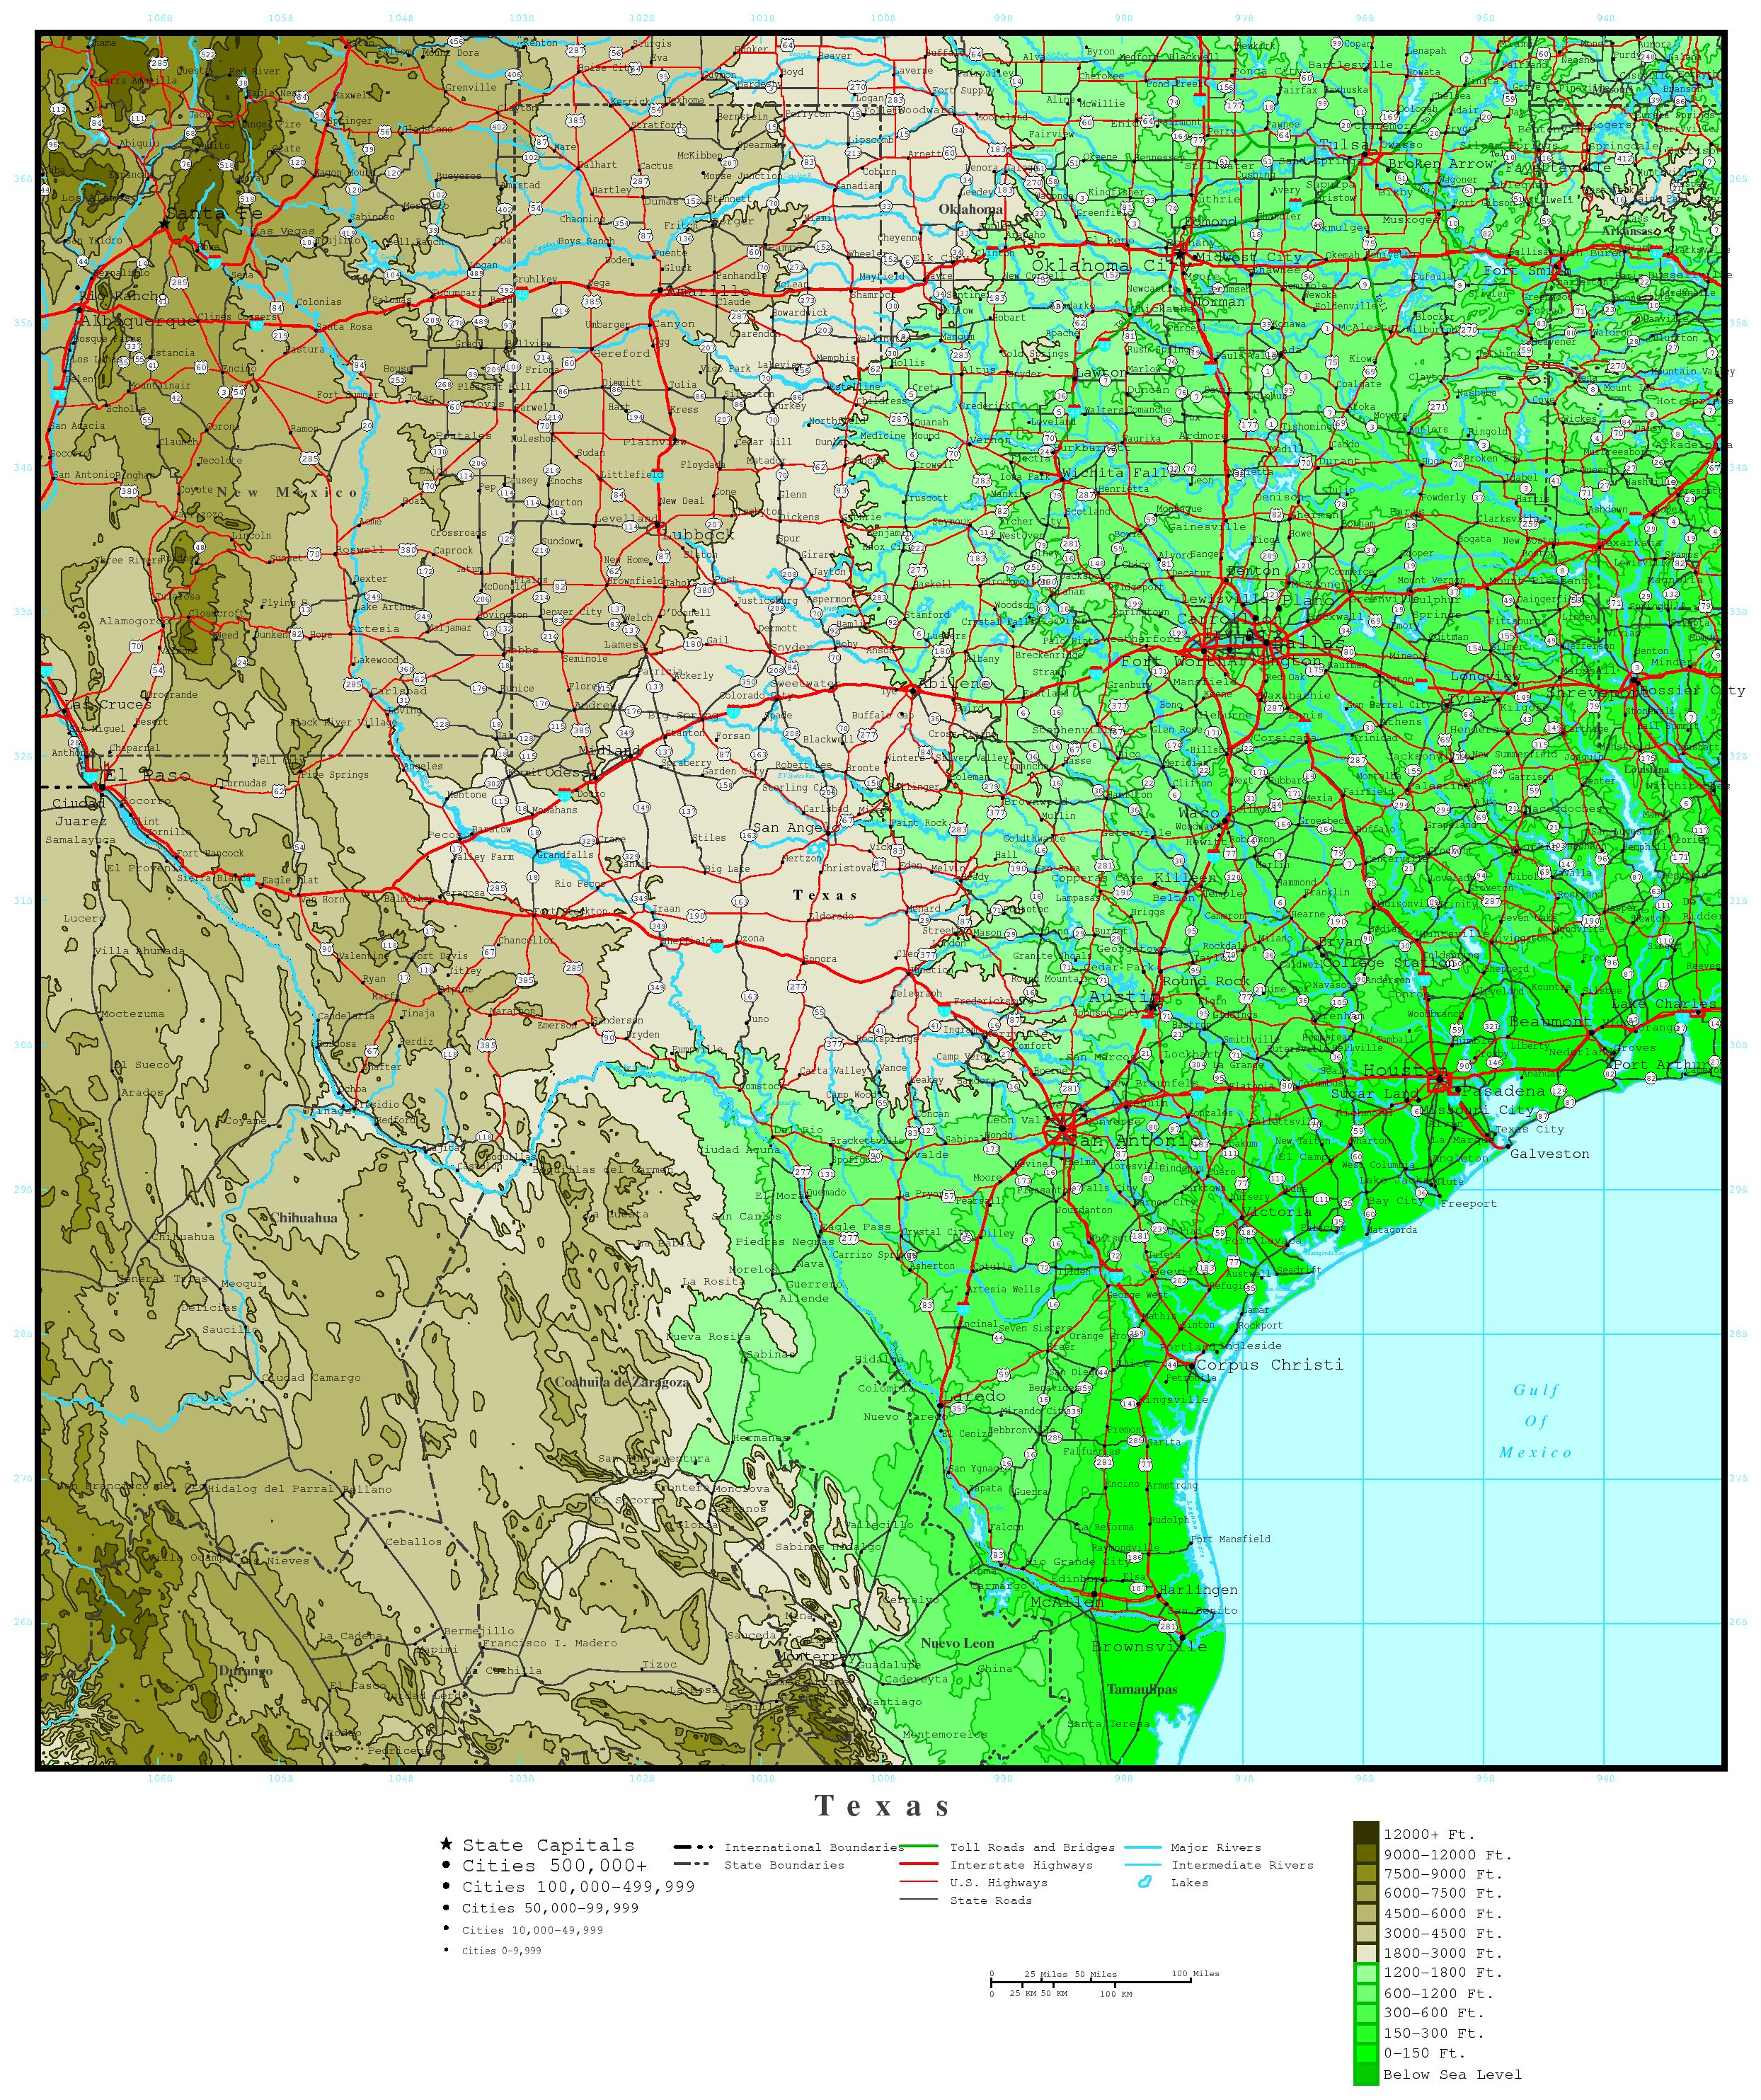 Texas Elevation Map - Interactive Elevation Map Of Florida